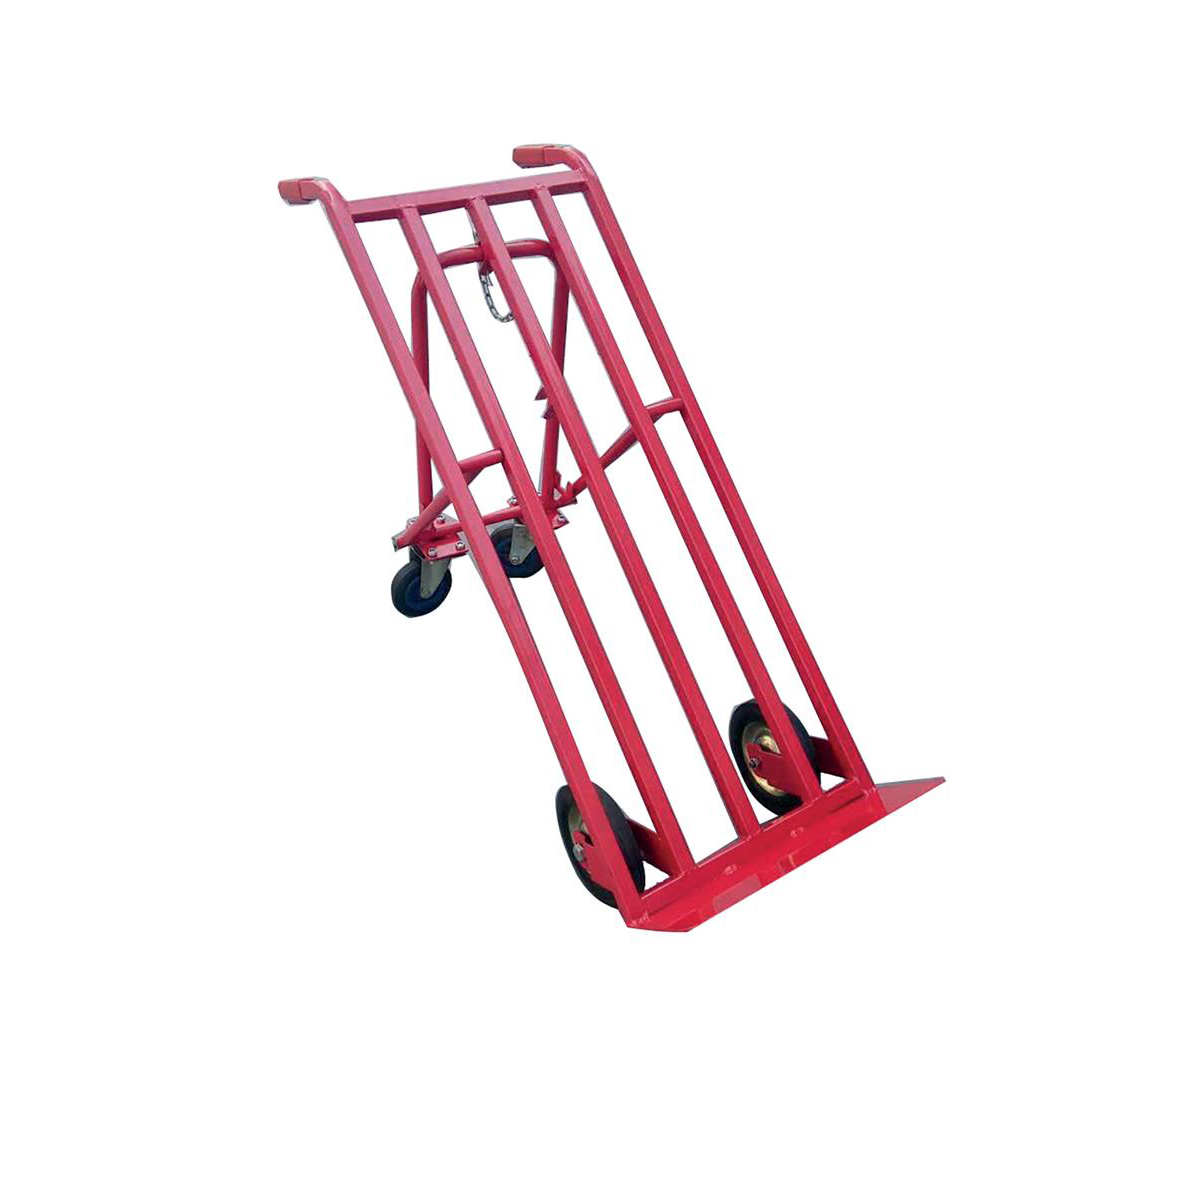 Platform Trucks 5 Star Facilities Sack Truck Heavy Duty 3 Position Steel Frame Double Rear Castors Capacity 300kg Red